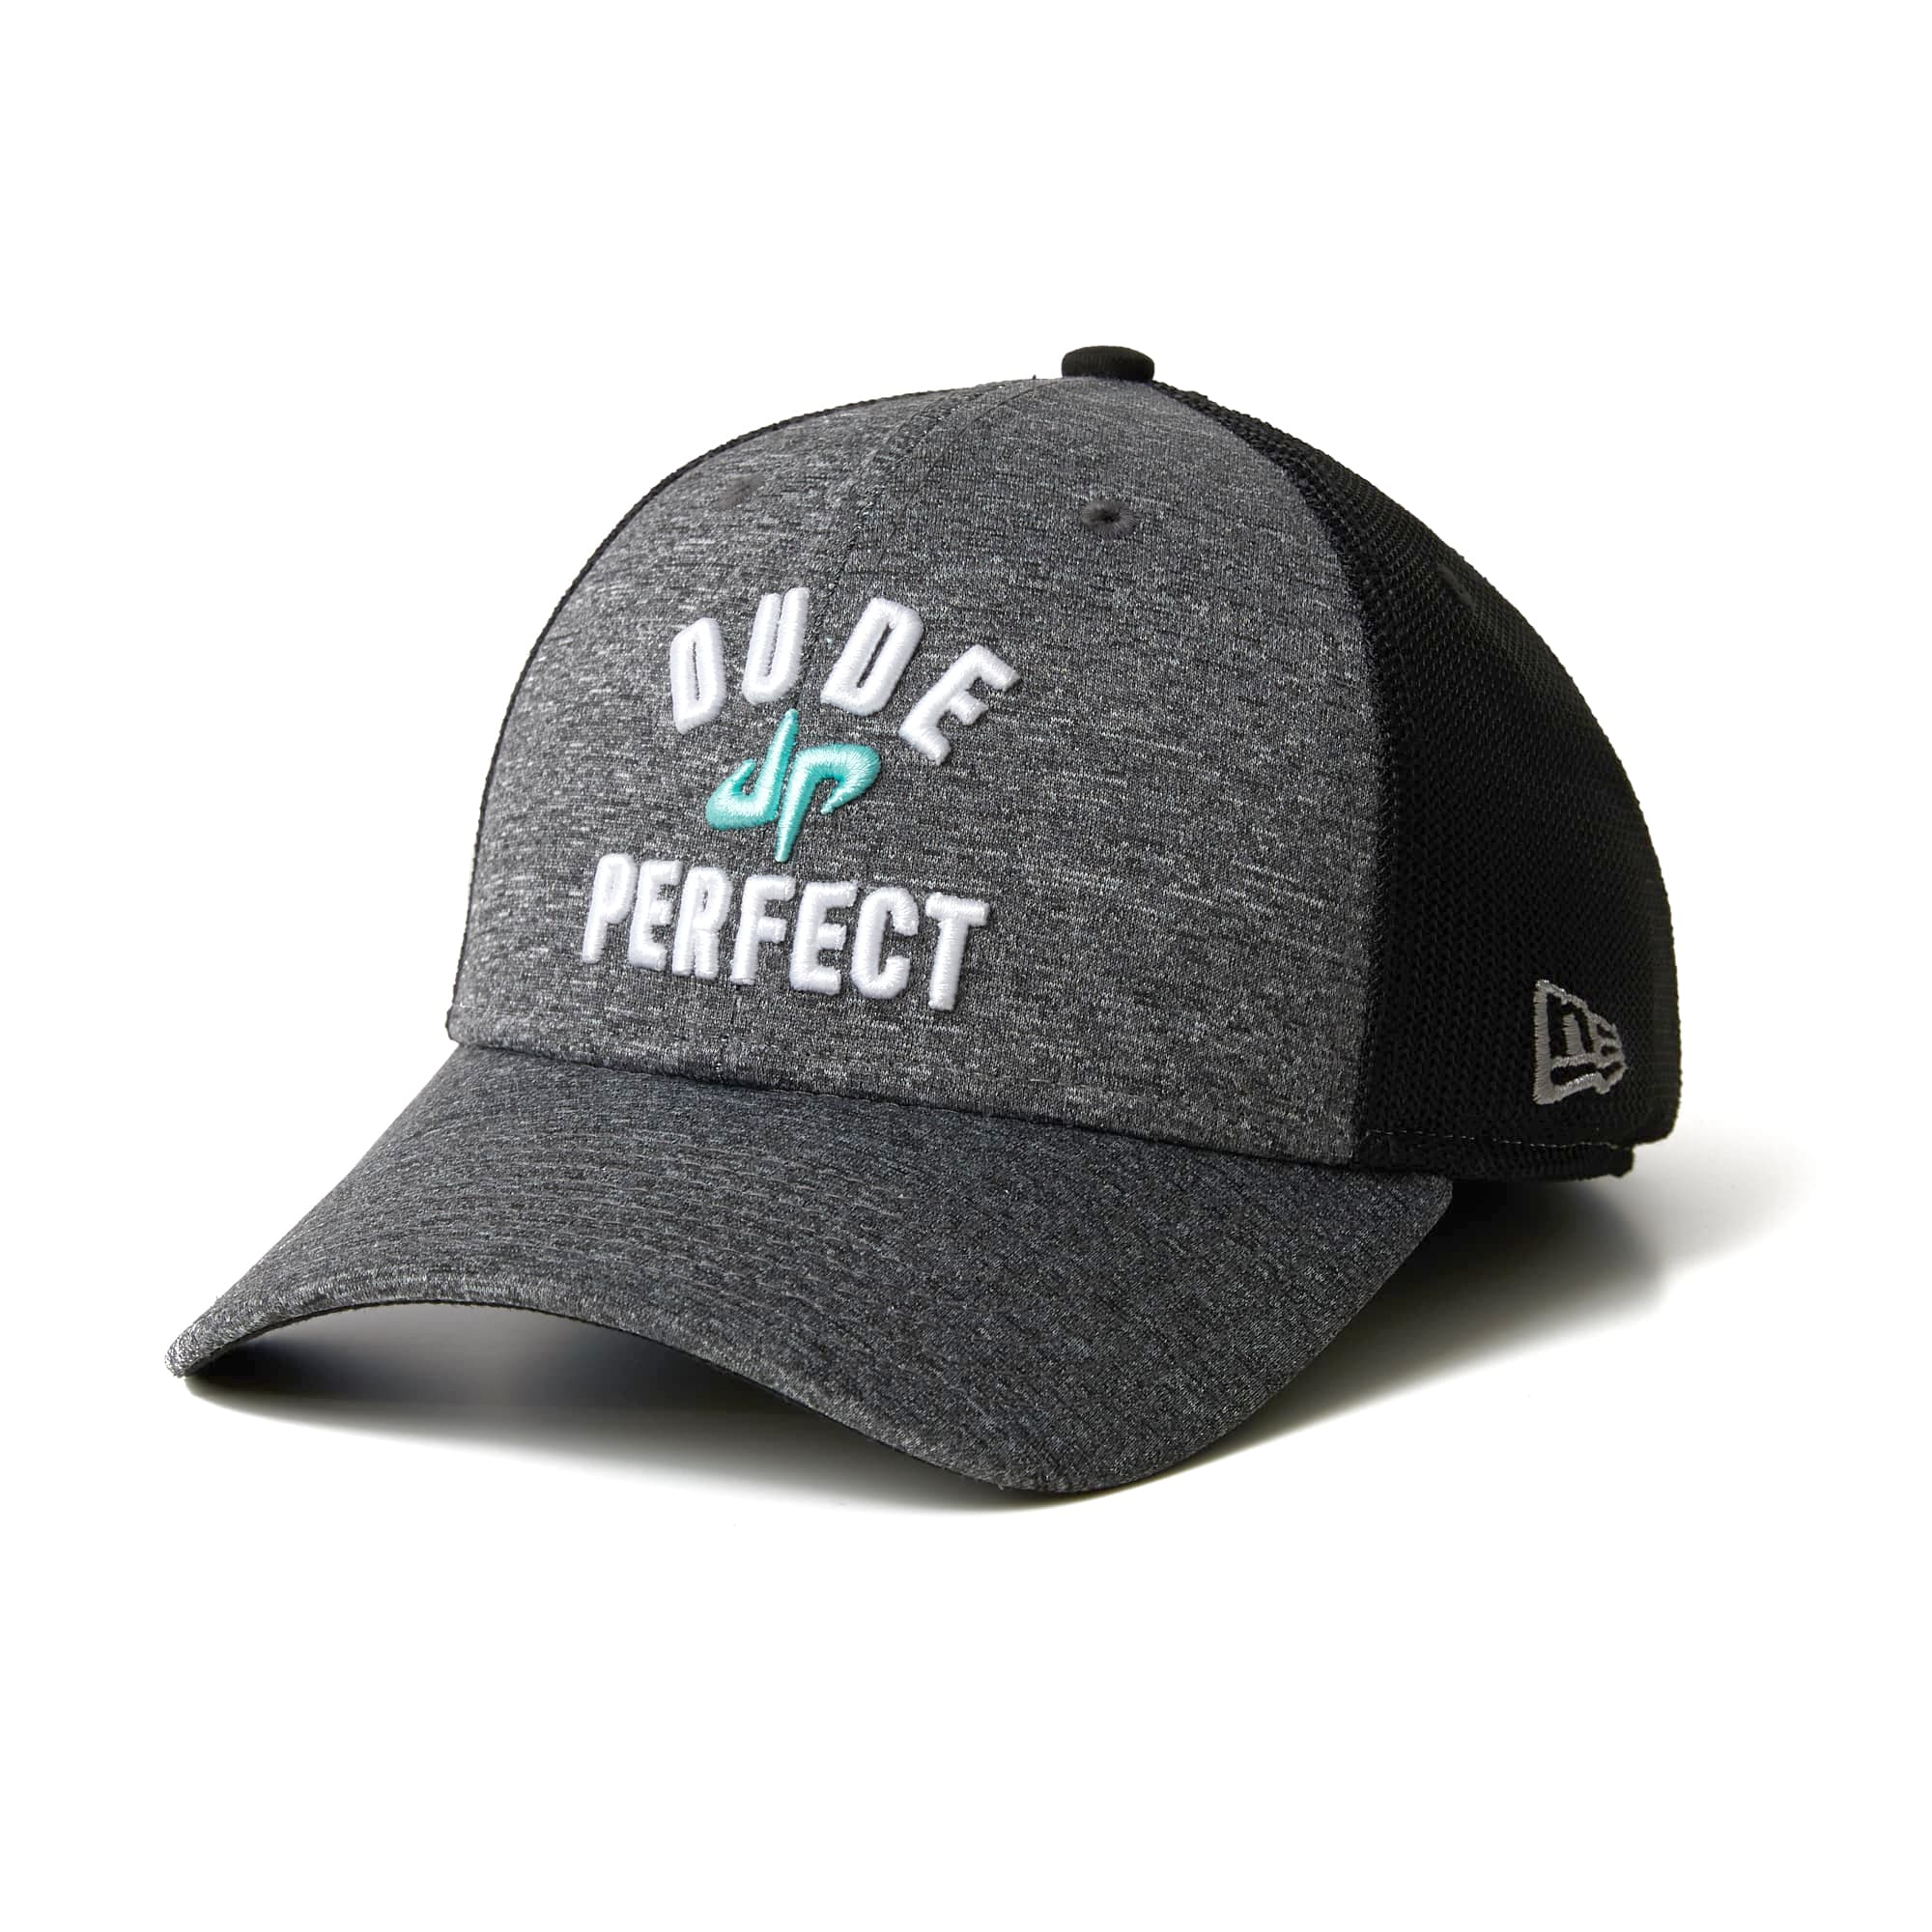 1384945b0 Dude Perfect | Official Storefront | Dude Perfect Official